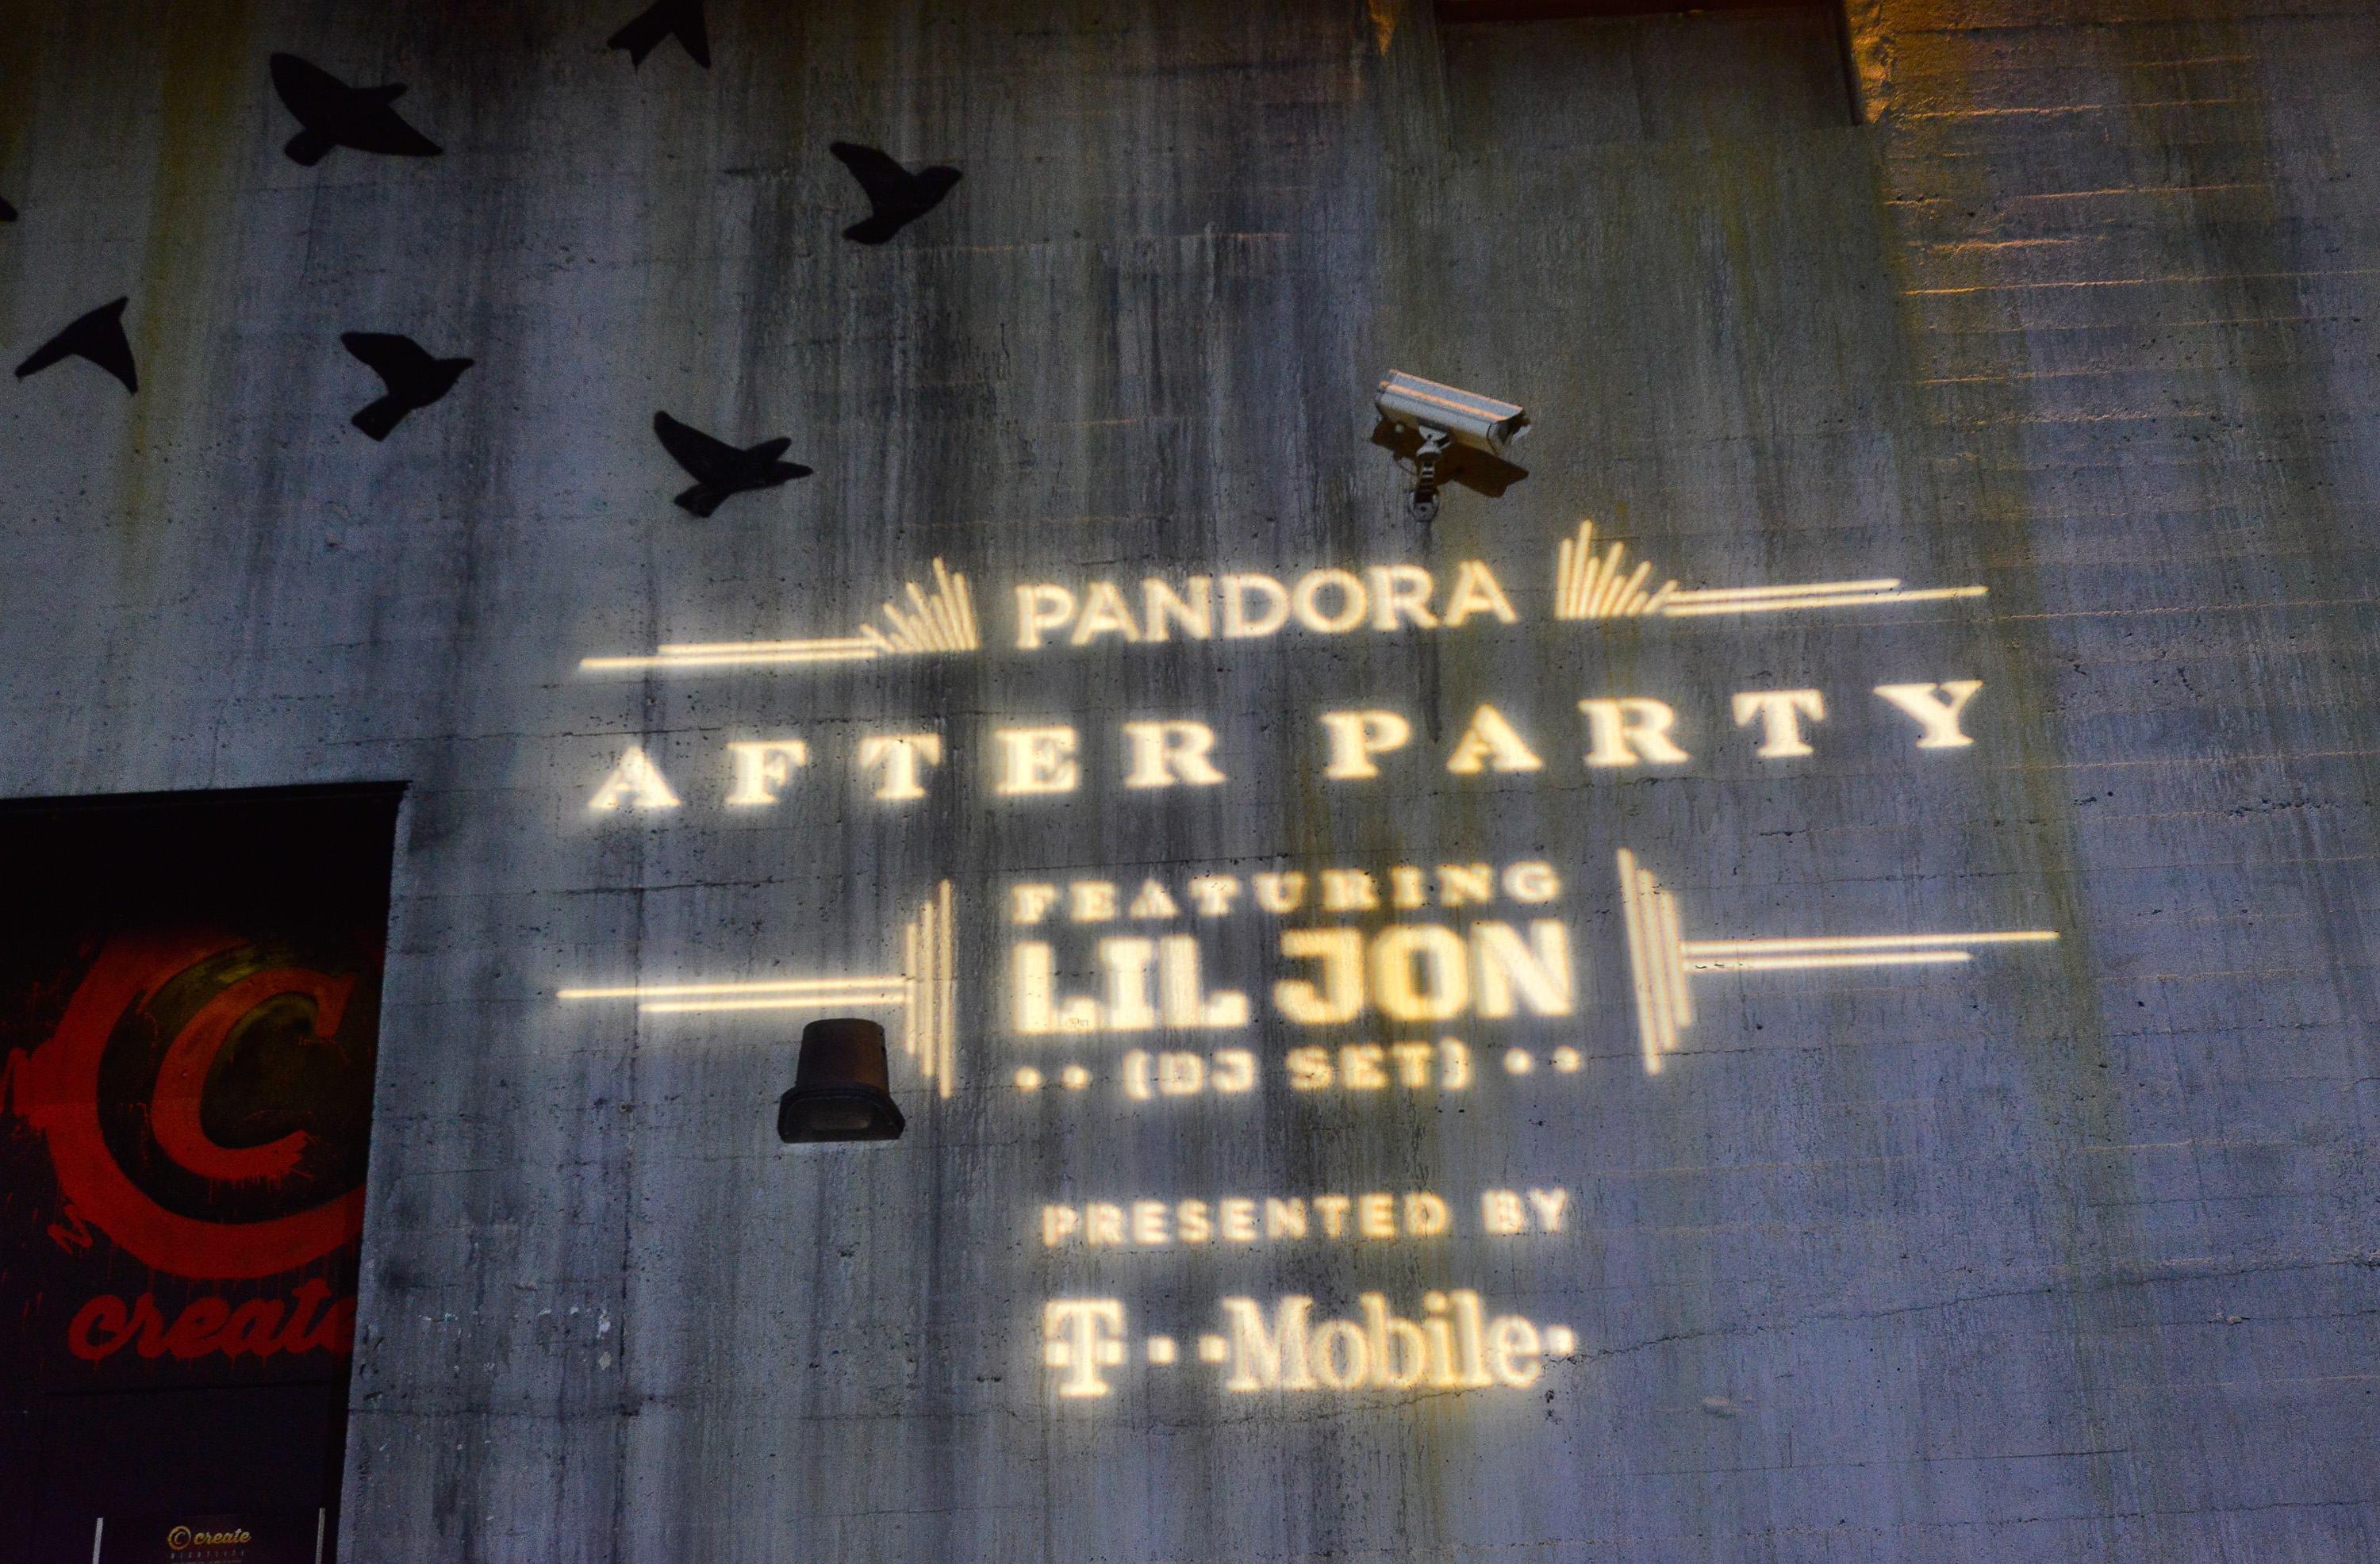 The PANDORA GRAMMY After Party Featuring Lil Jon Brought To You By TMobile